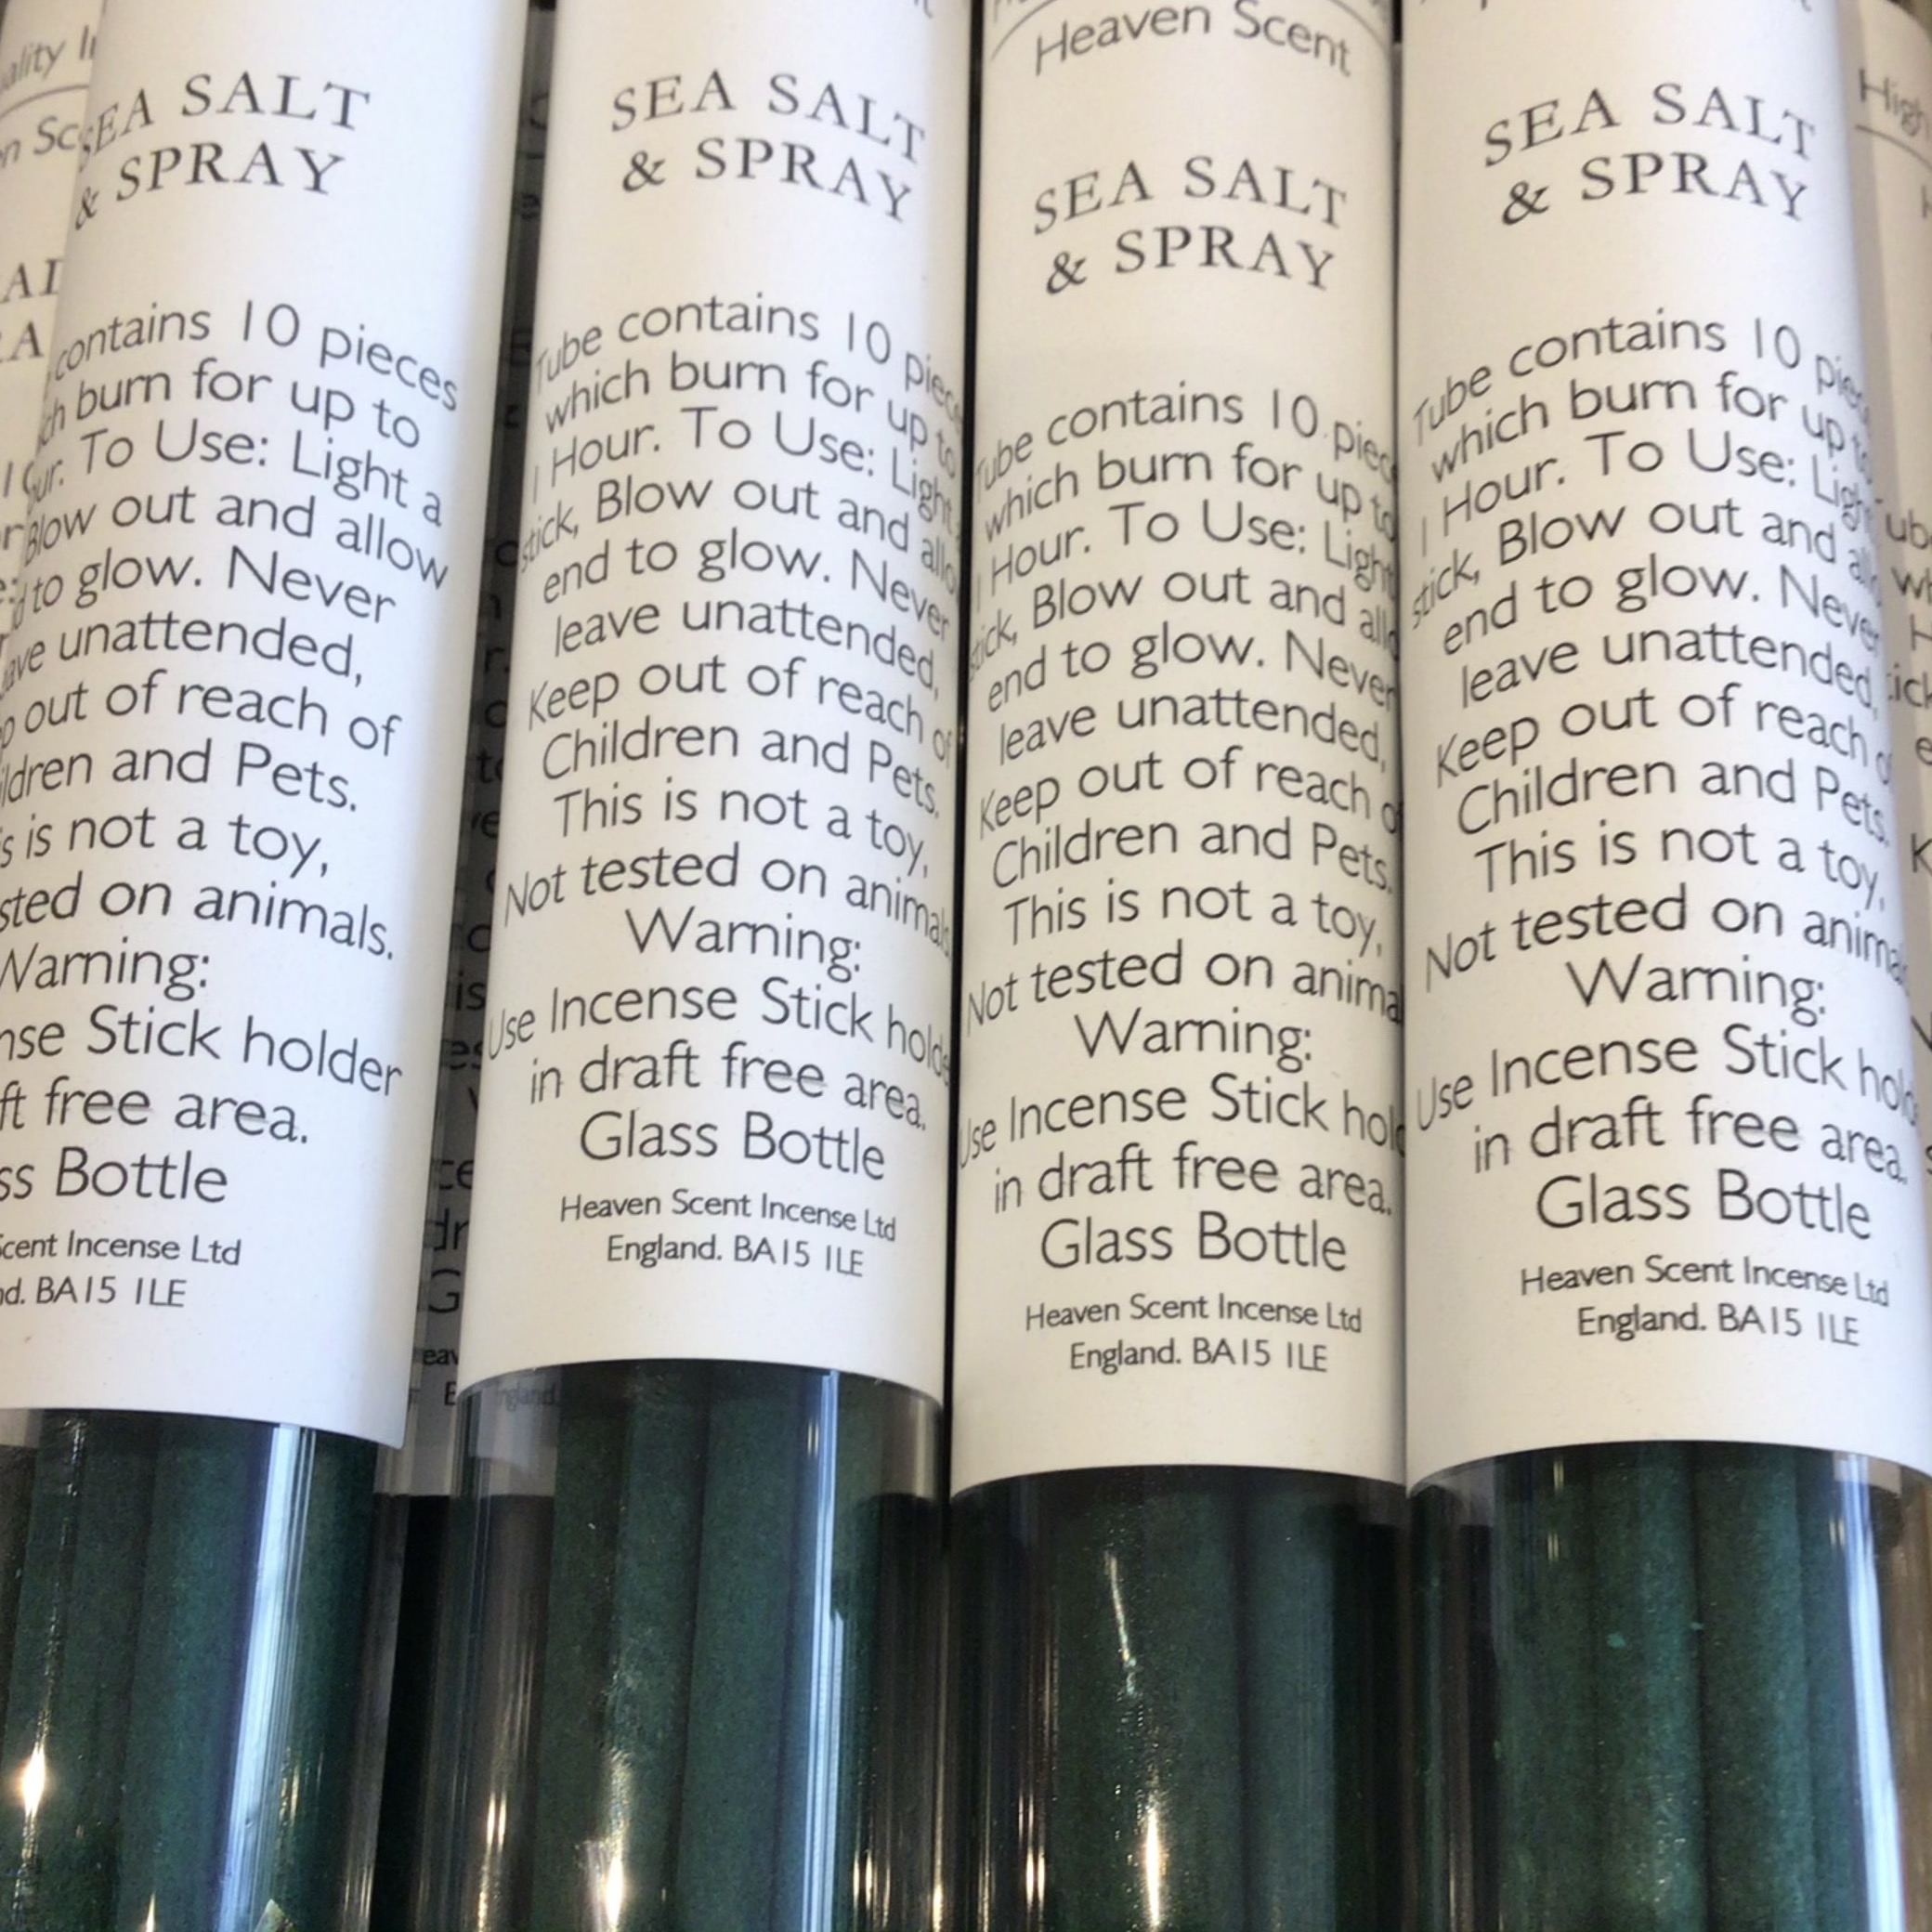 Heaven Scent - Sea Salt & Spray Incense in glass vial